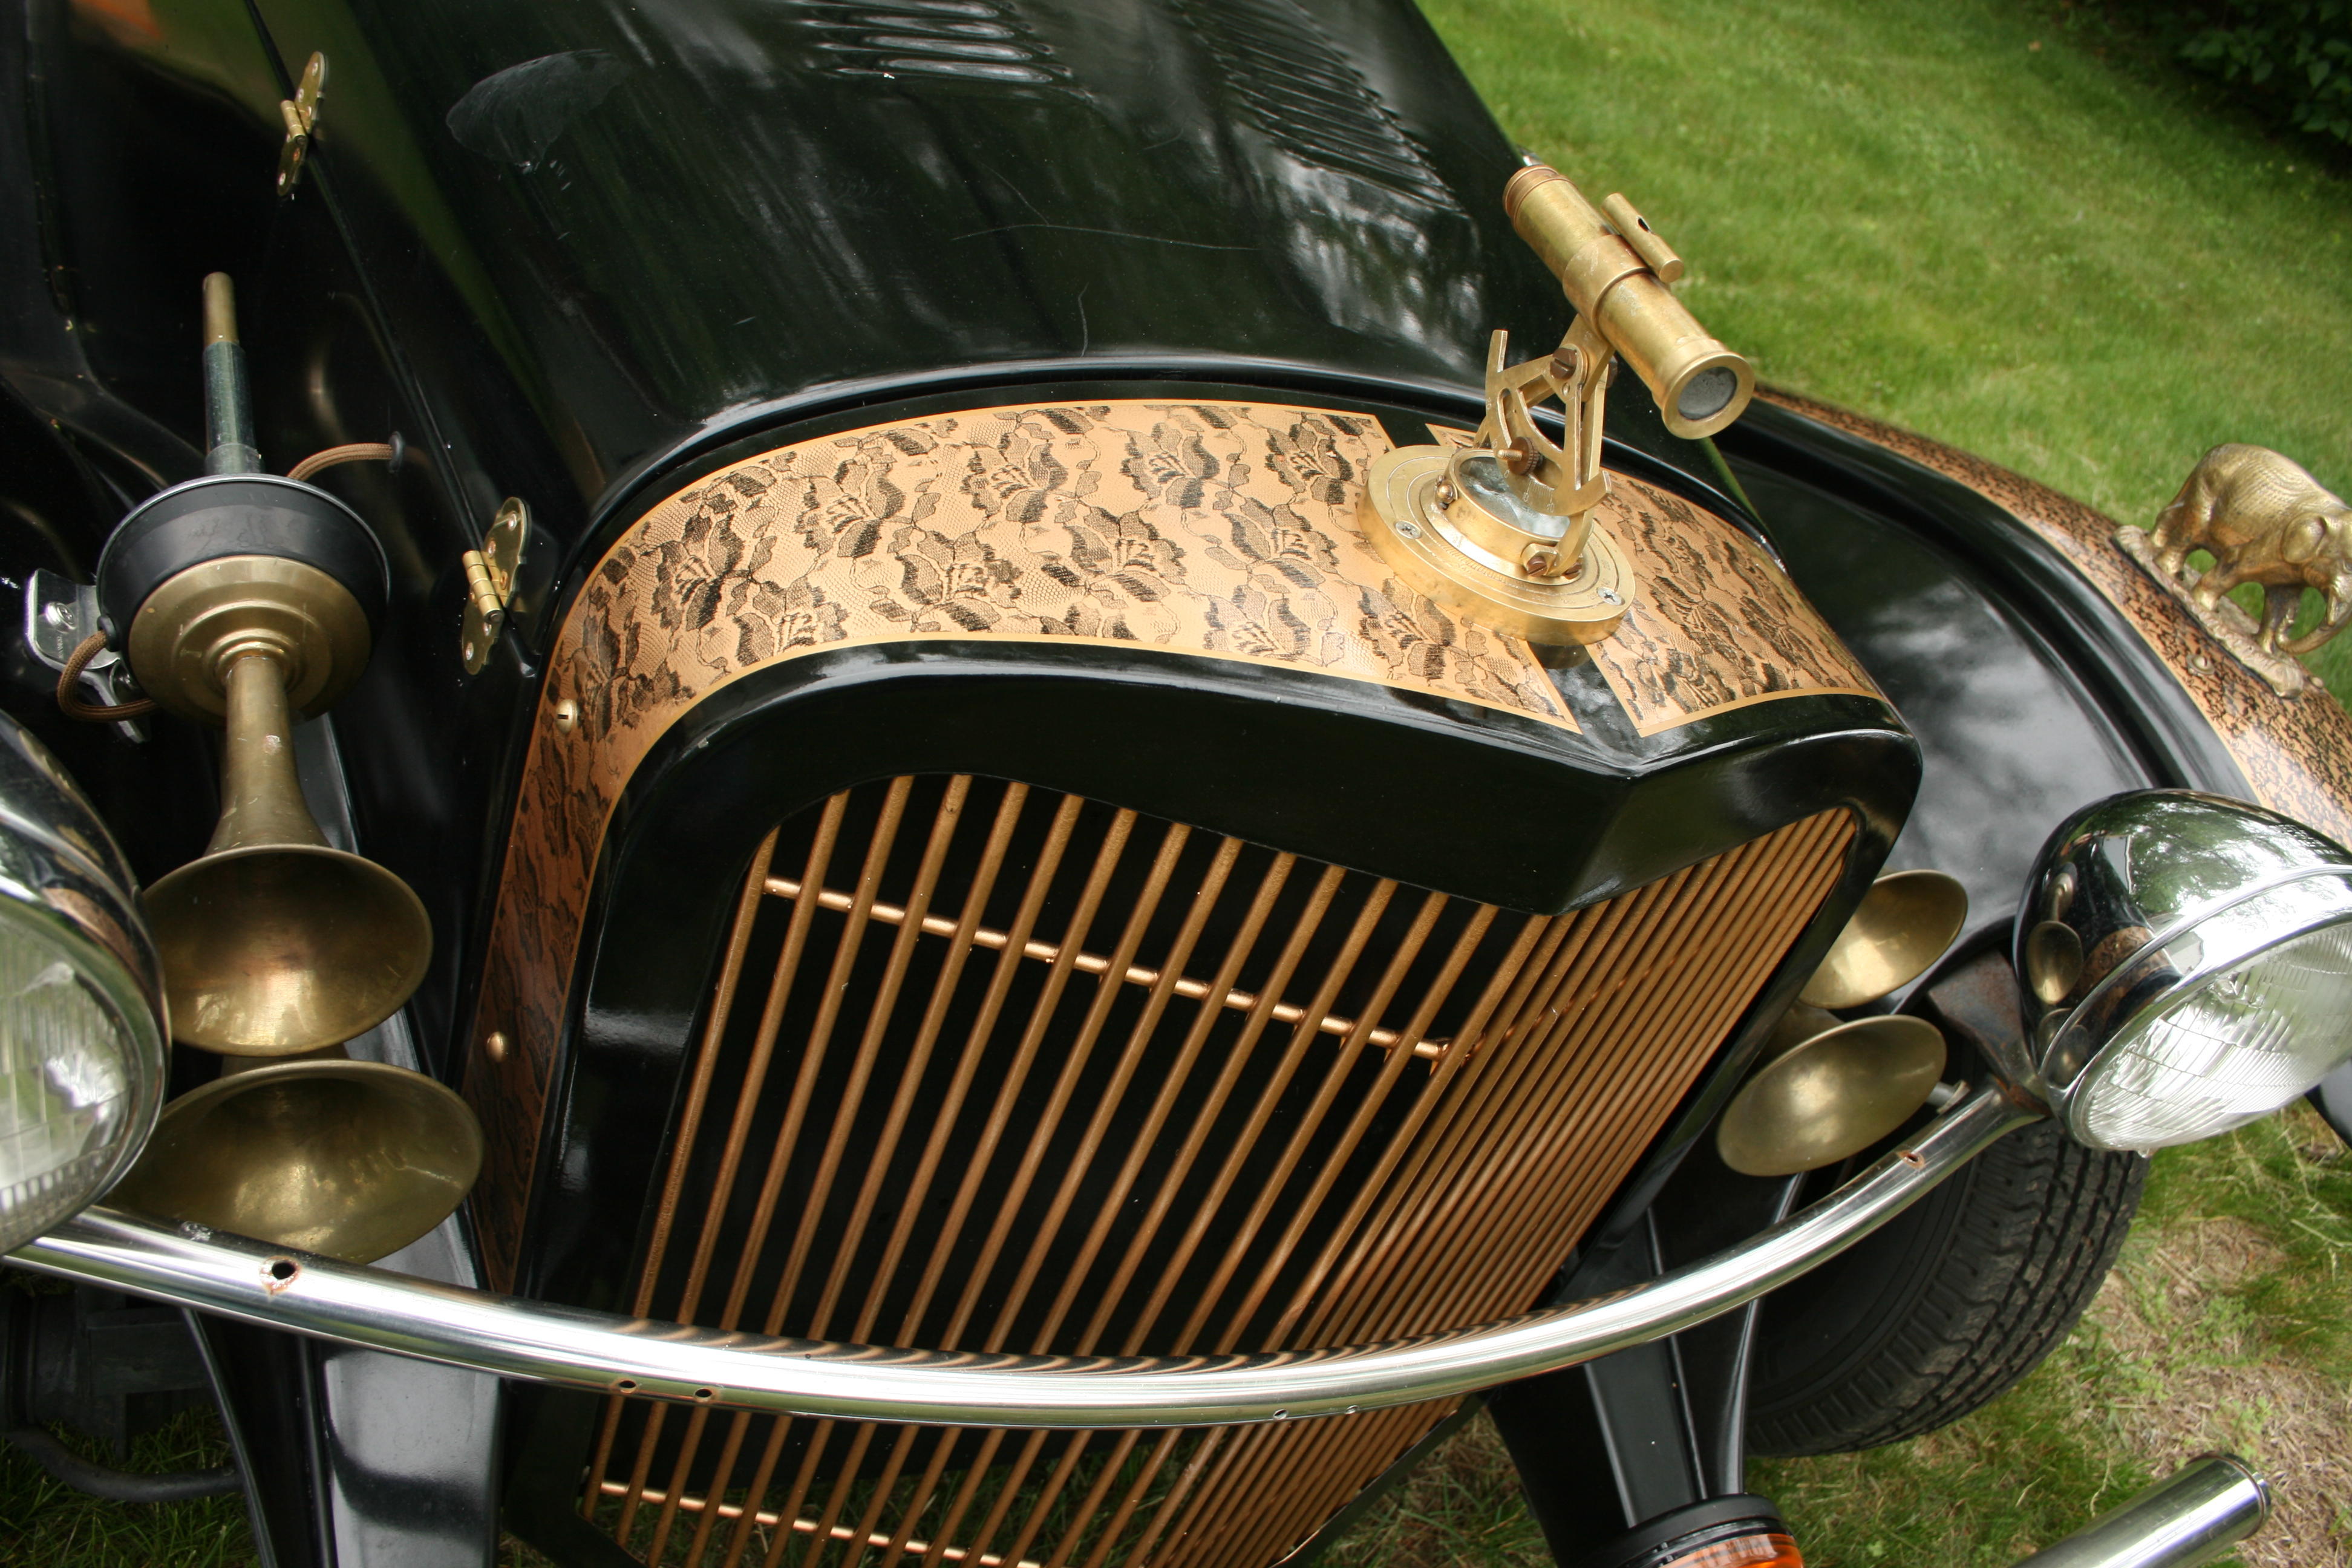 The Steampunk Roadster